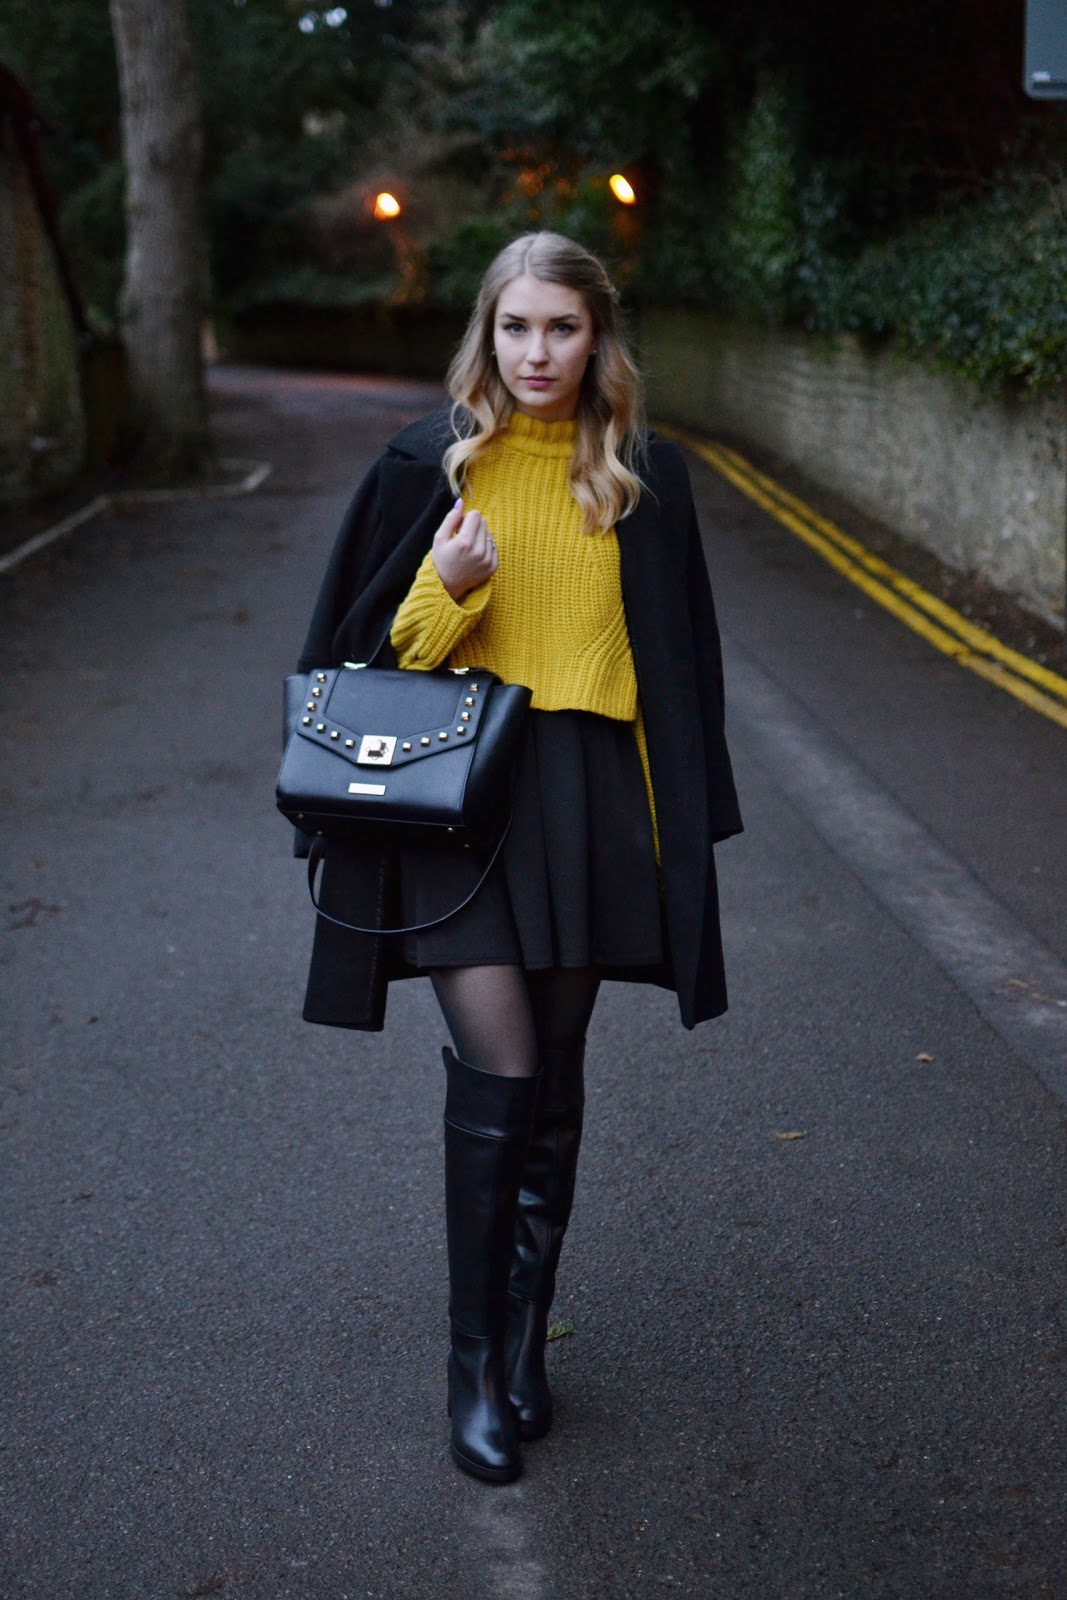 Guildford fashion blogger Kristiana Vasarina